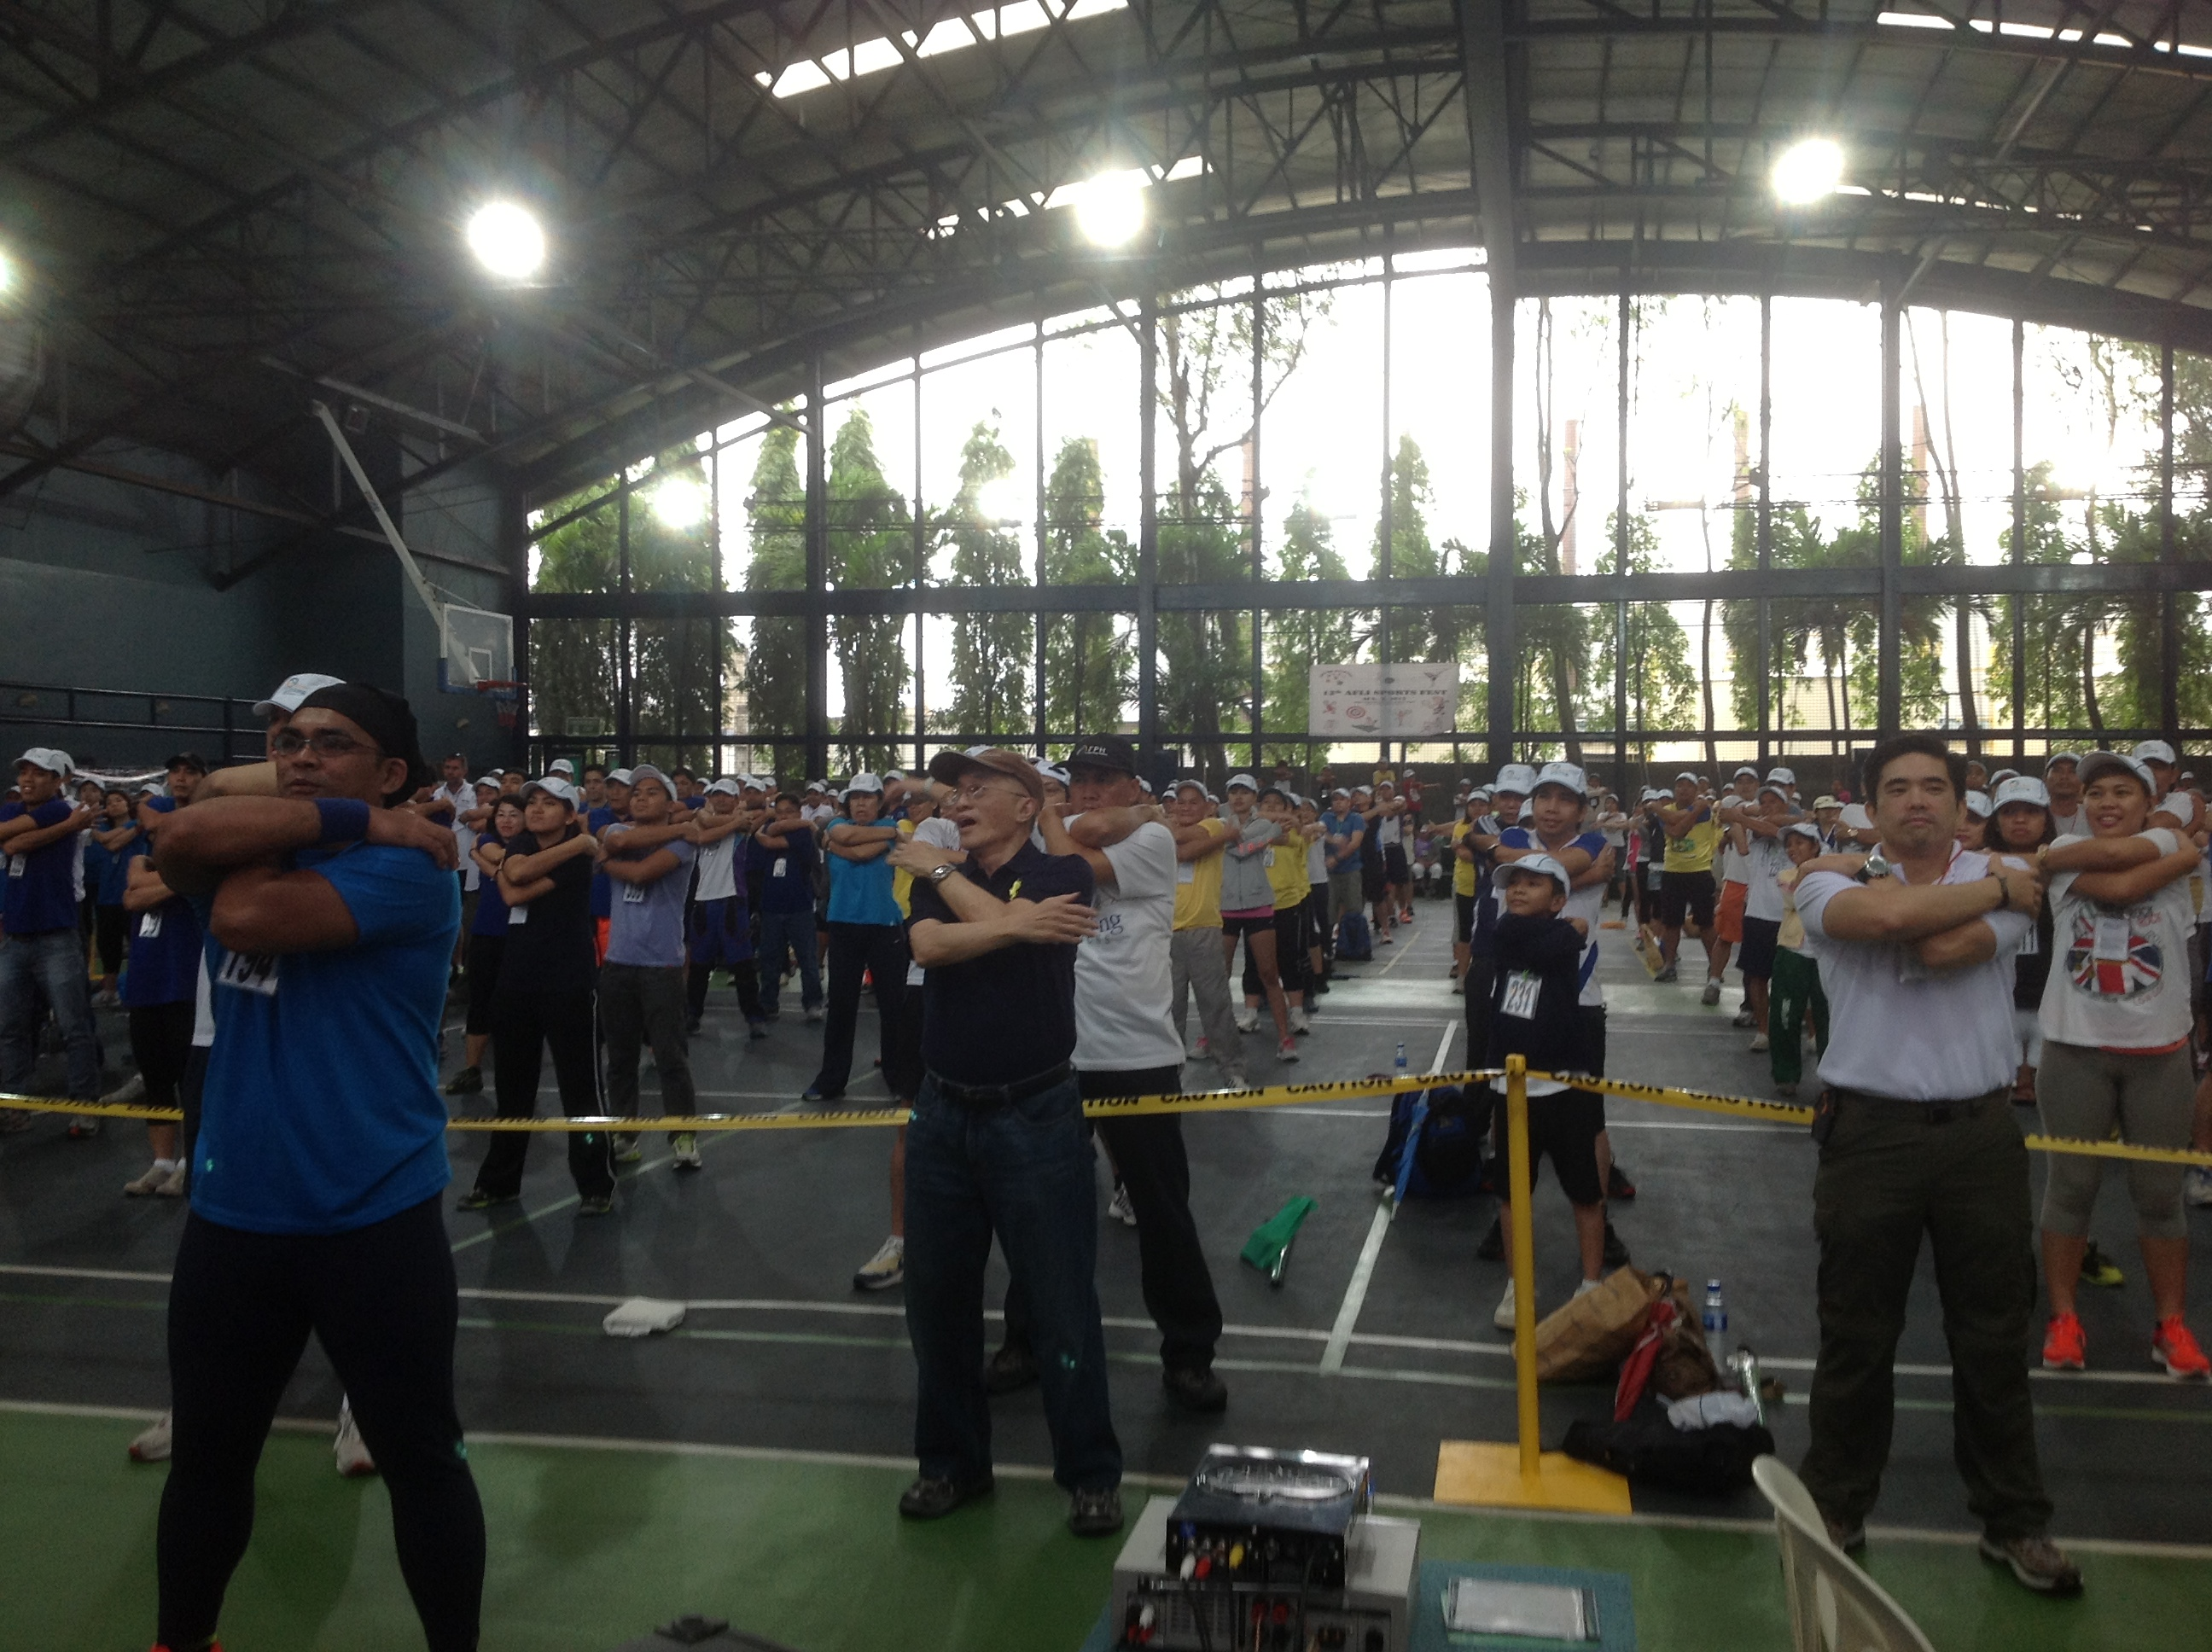 Lopez Group chairman emeritus Oscar M. Lopez and FPH VP Benjamin R. Lopez lead the Walk the Talk attendees in performing the mandatory warm-up exercises